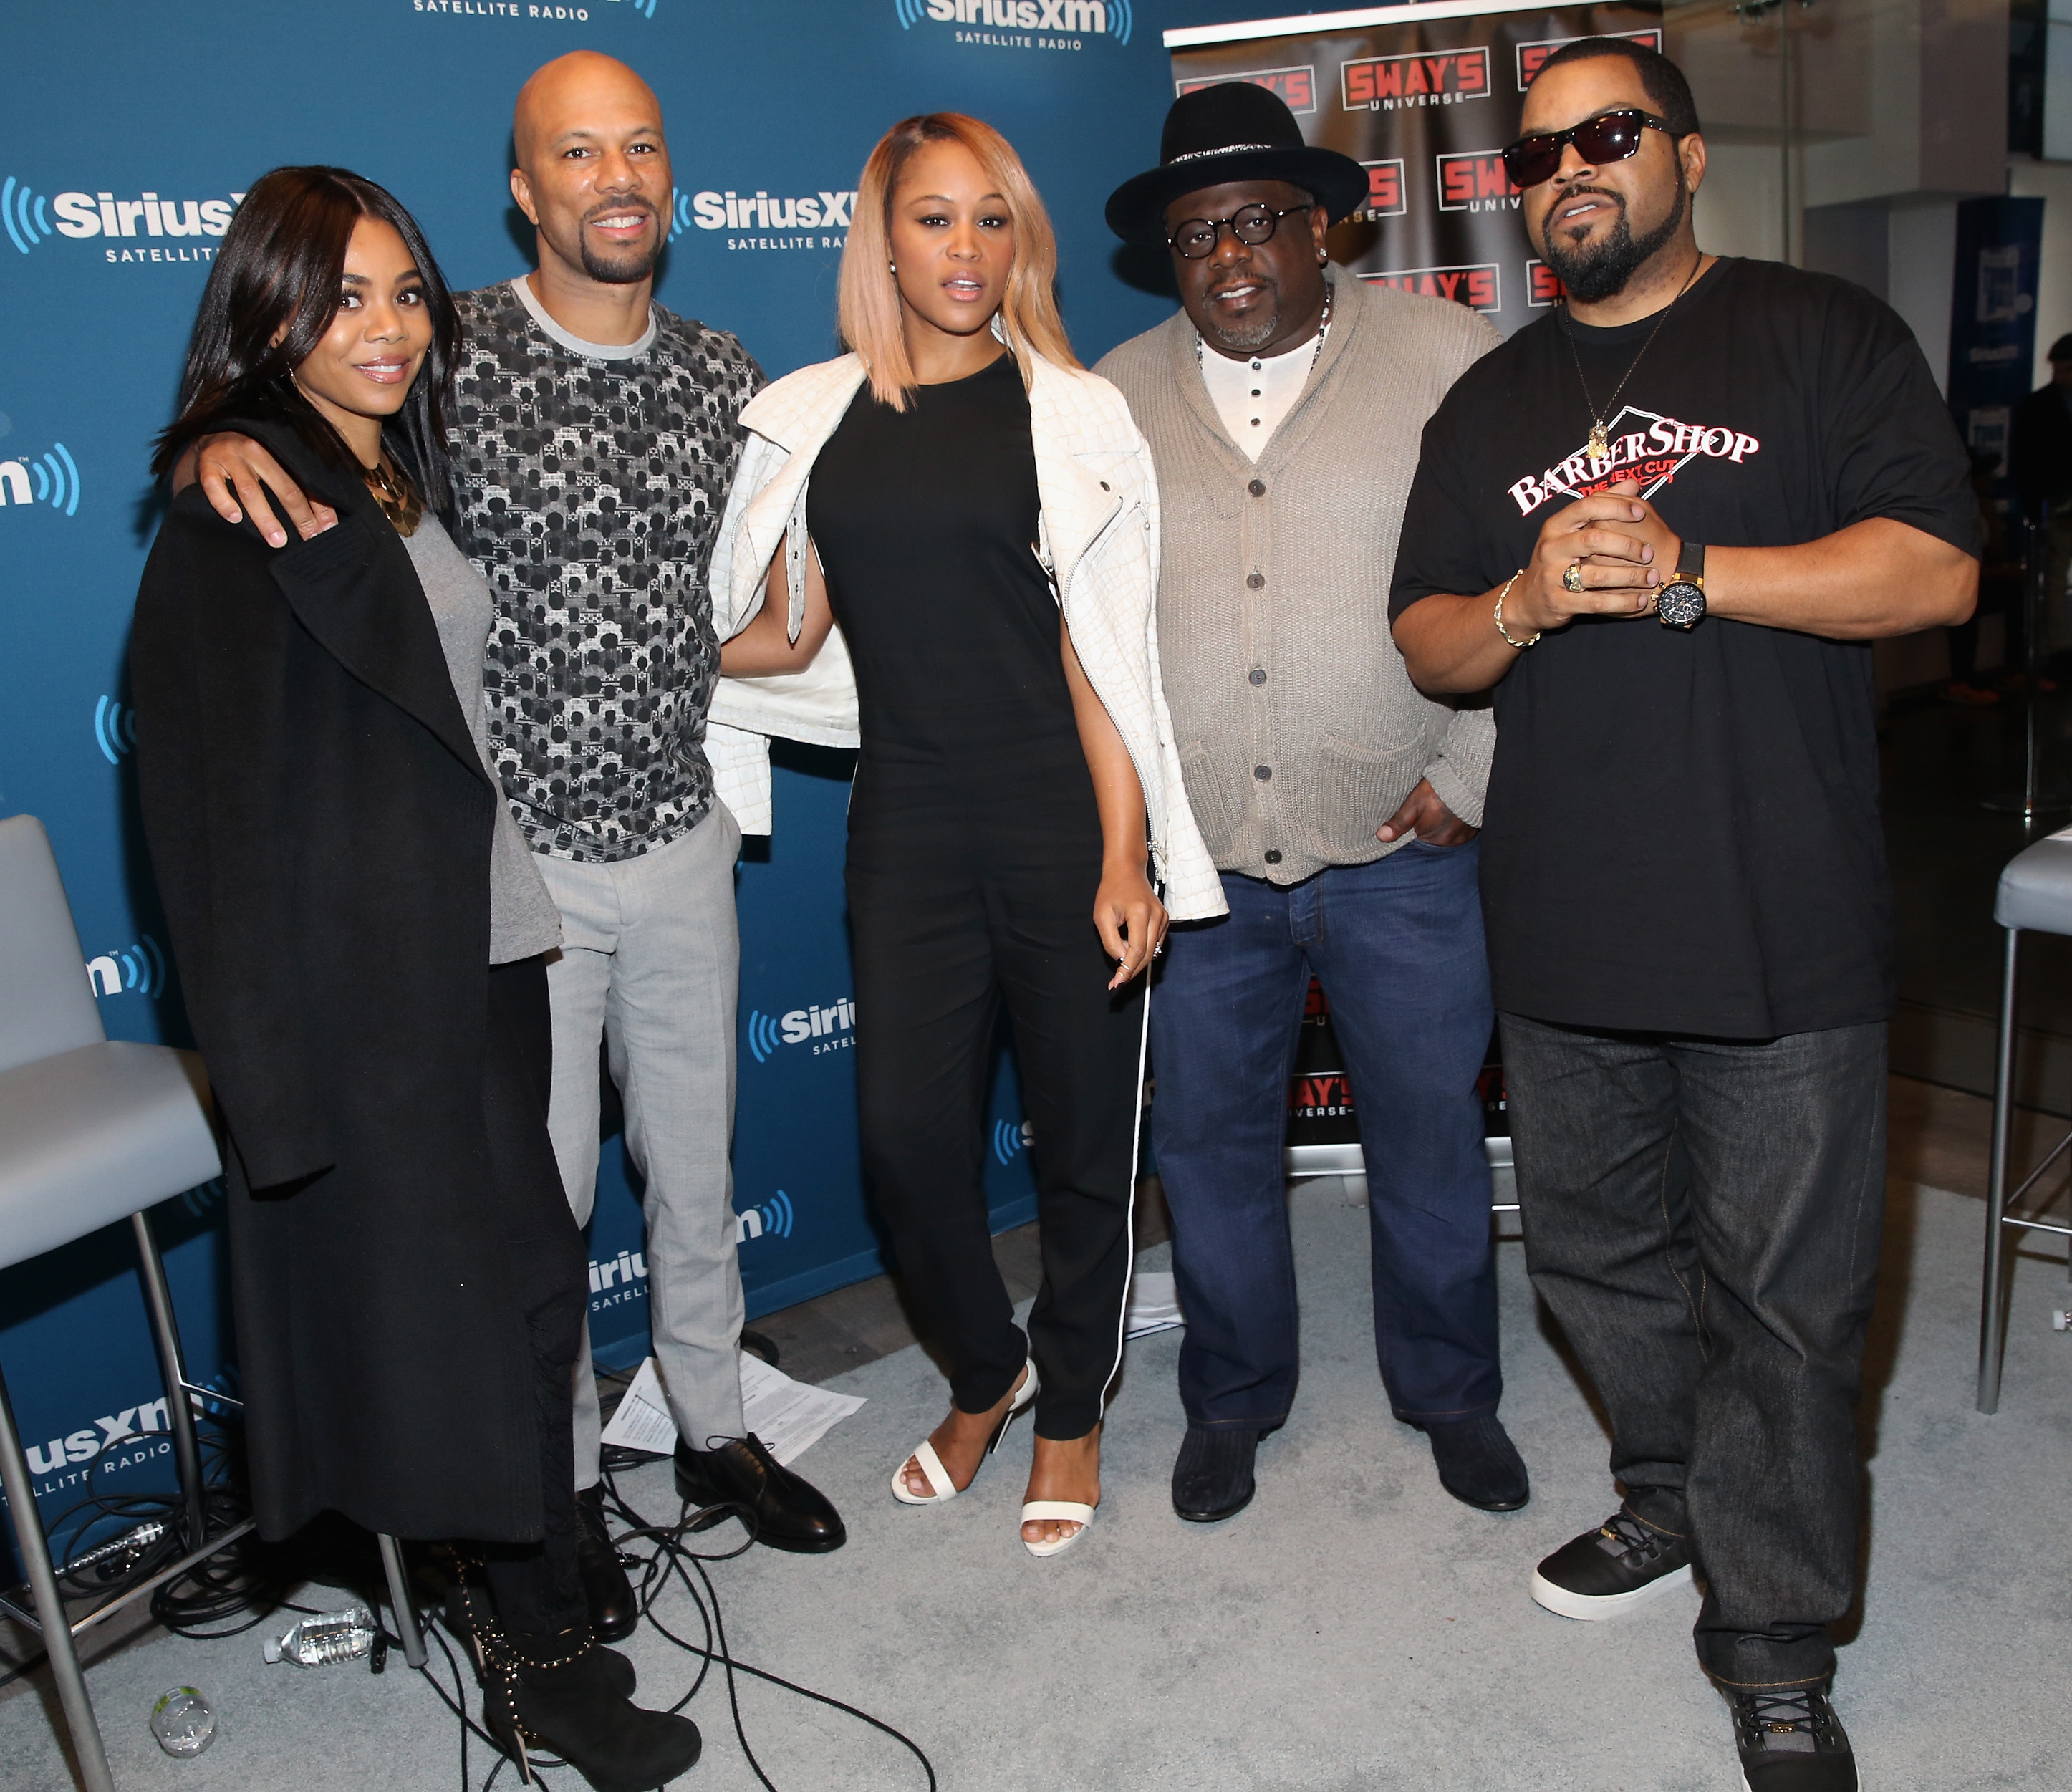 SiriusXM's 'Town Hall' With The Cast Of 'Barbershop: The Next Cut': Town Hall To Air On Eminem's Exclusive SiriusXM Channel Shade 45